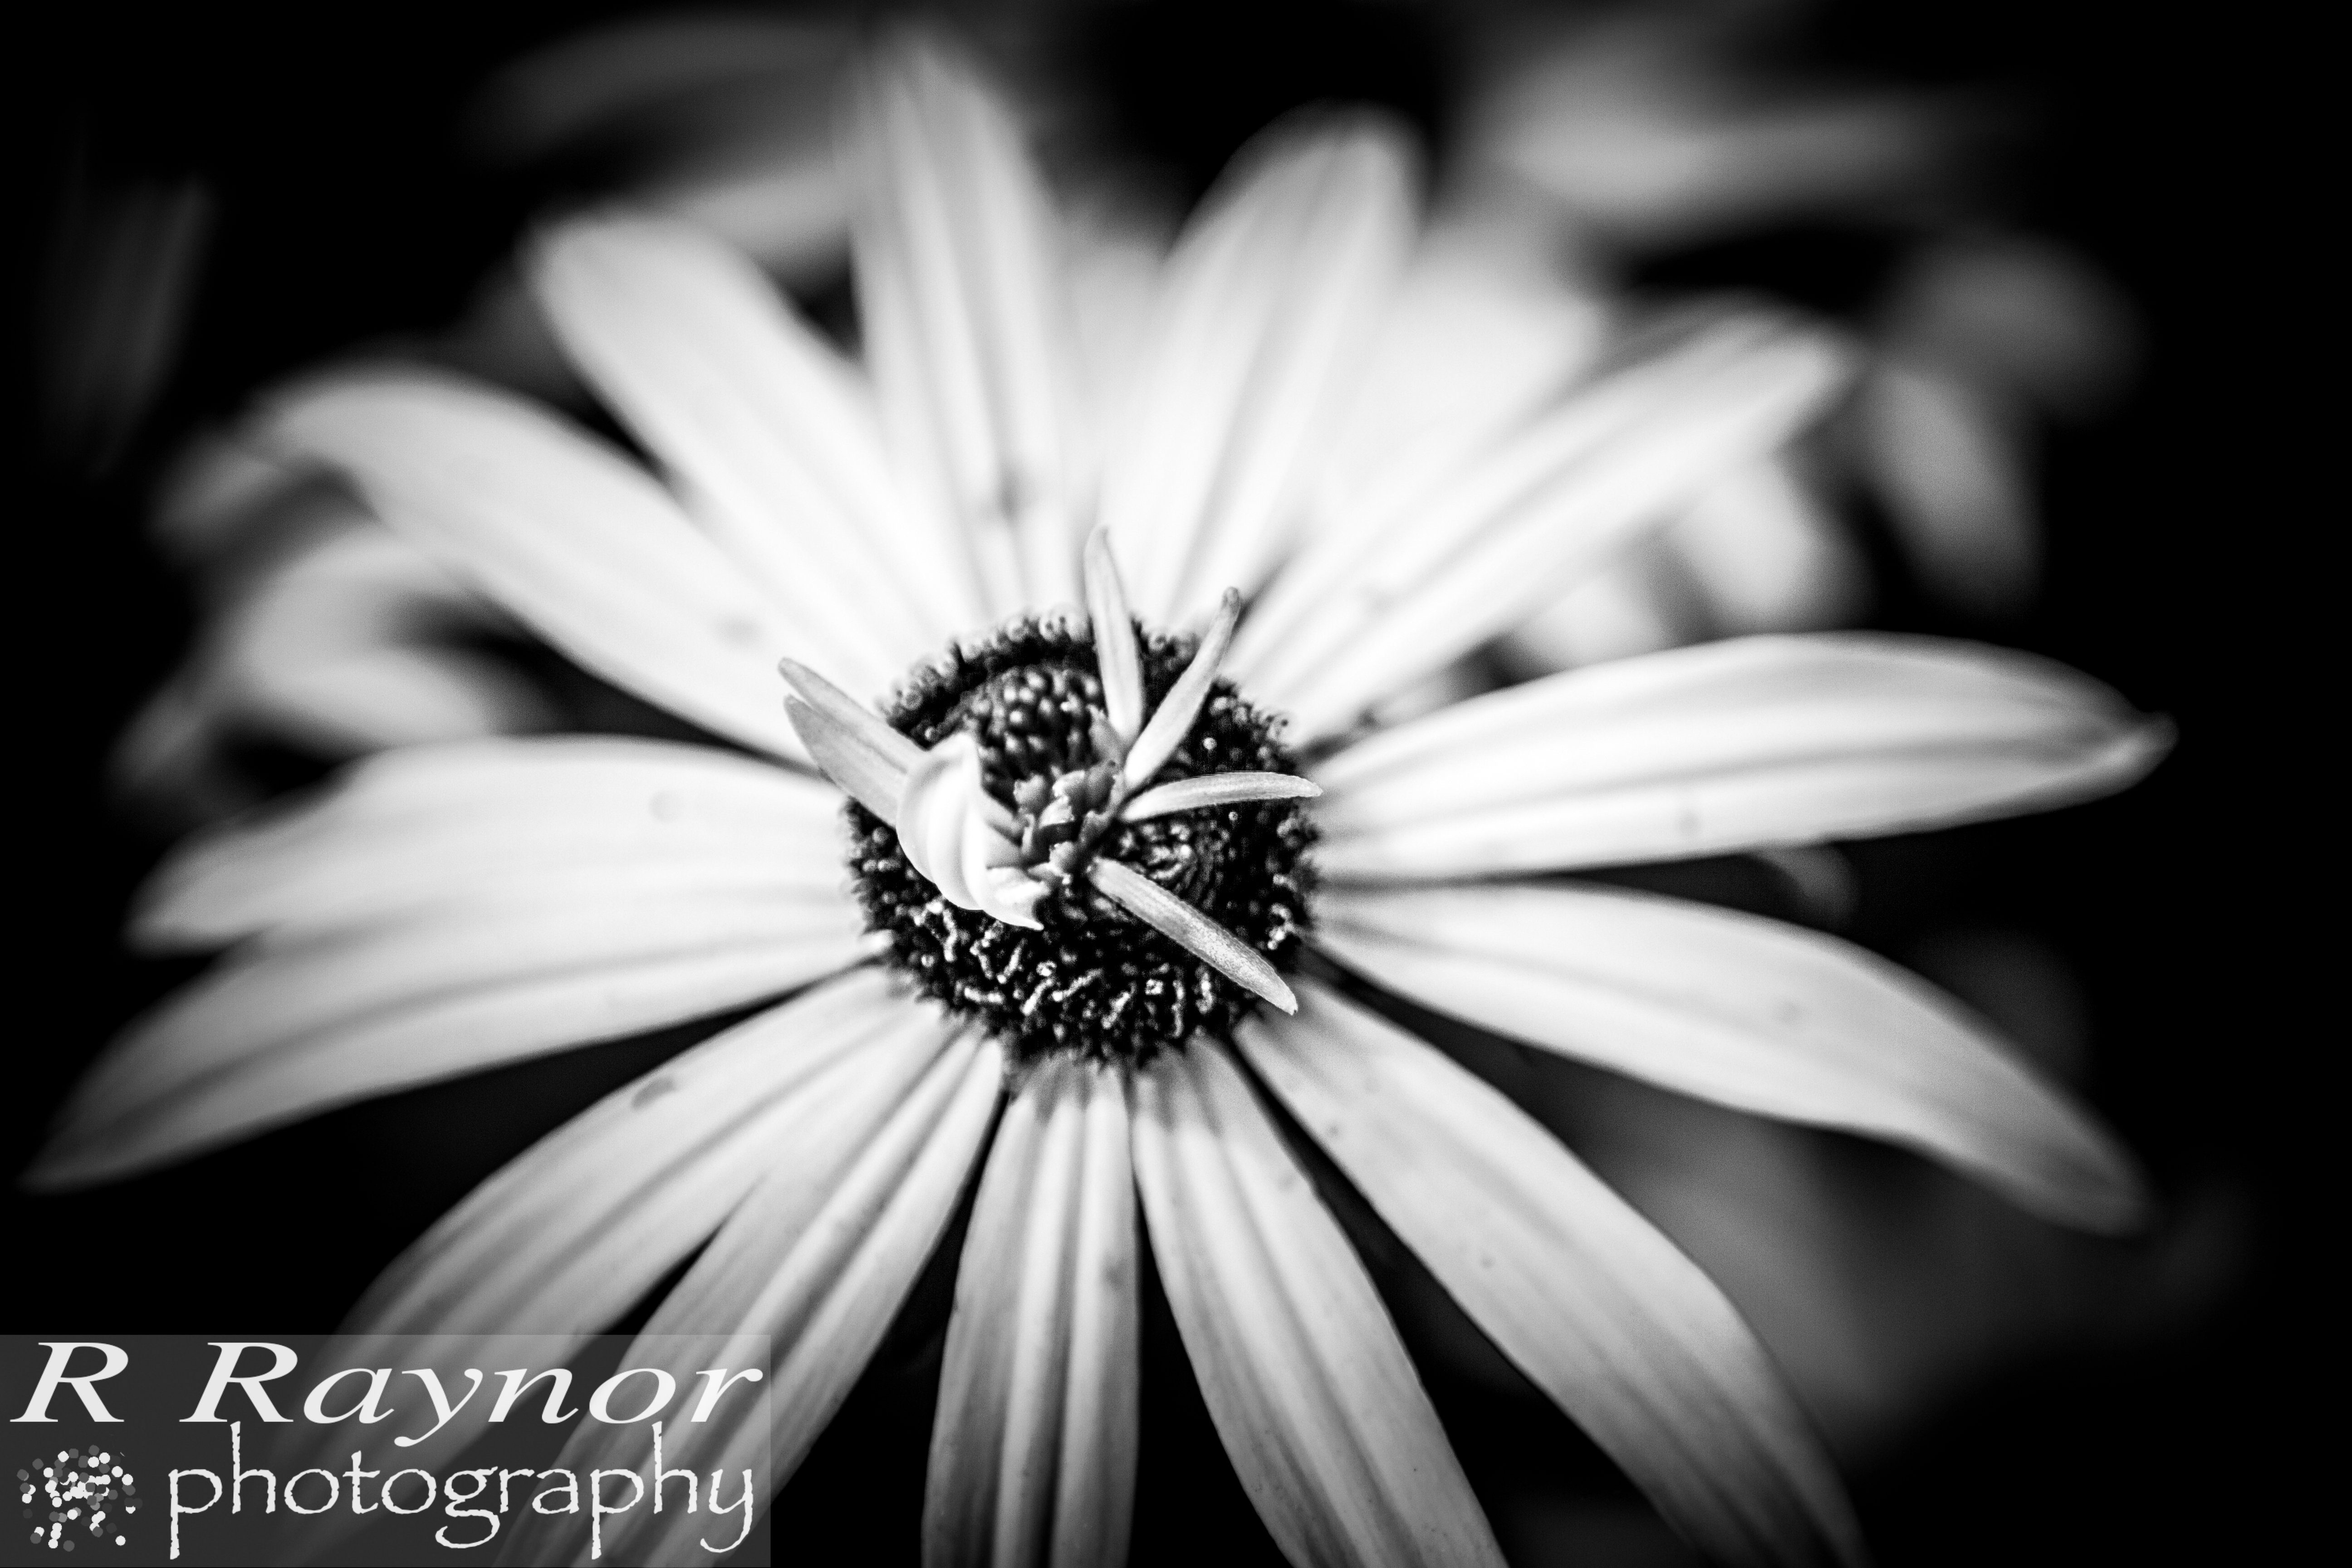 First_20150903_RRaynor0008